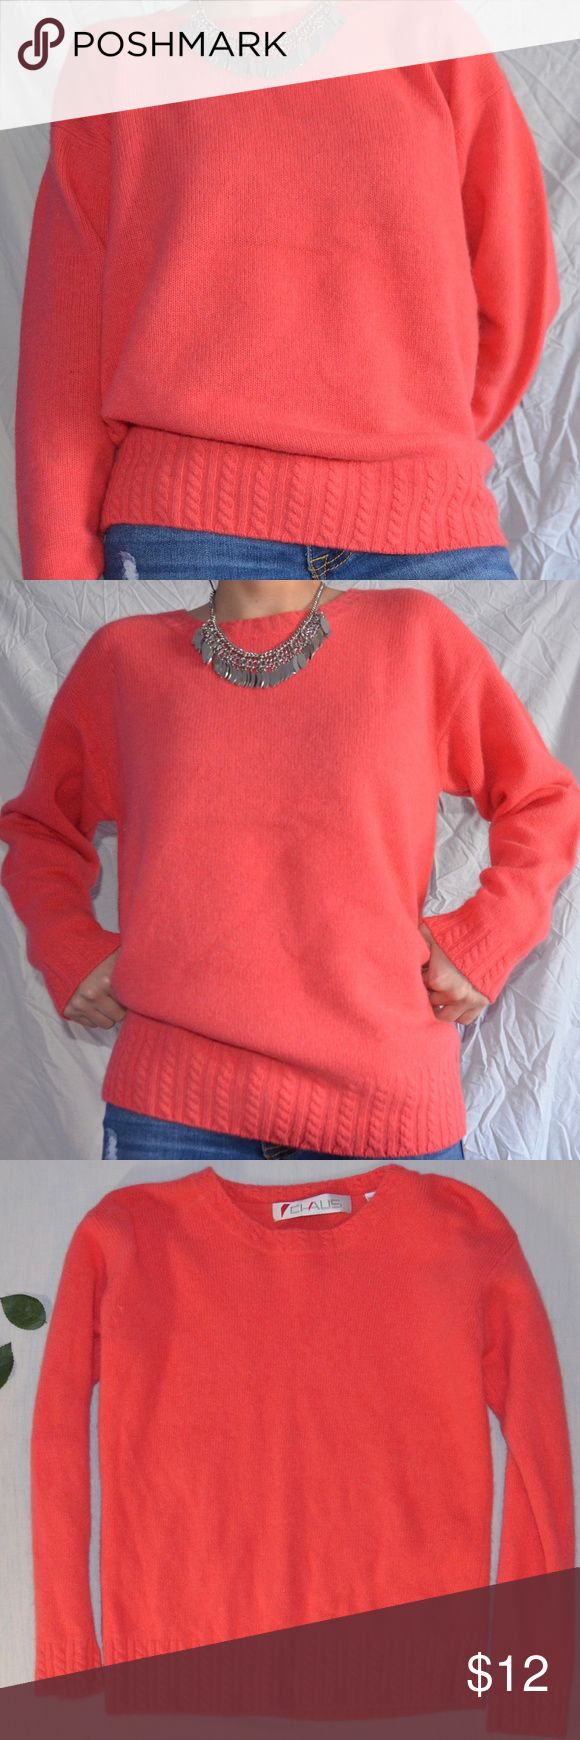 Chaus Coral Sweater Comfortable coral sweater  Like new, only worn less than 5 times   Small, but a bit baggy, if that's something you're interested in. Chaus Sweaters